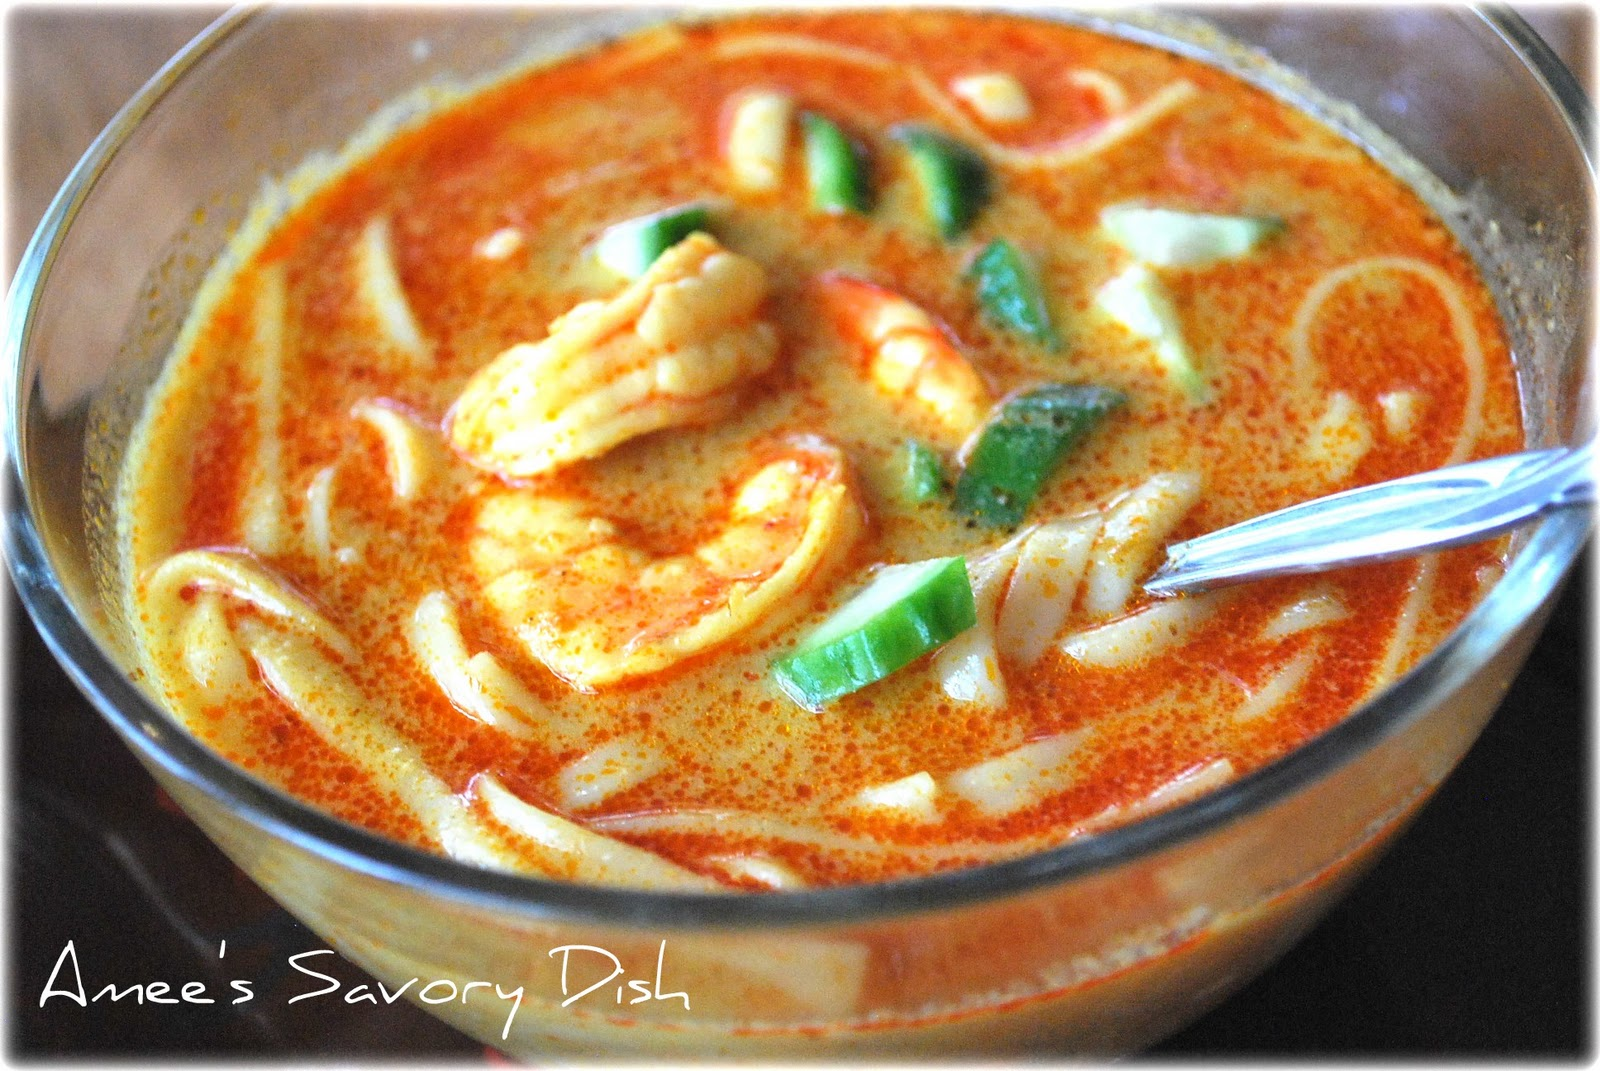 Shrimp Coconut Curry Soup - Amee's Savory Dish